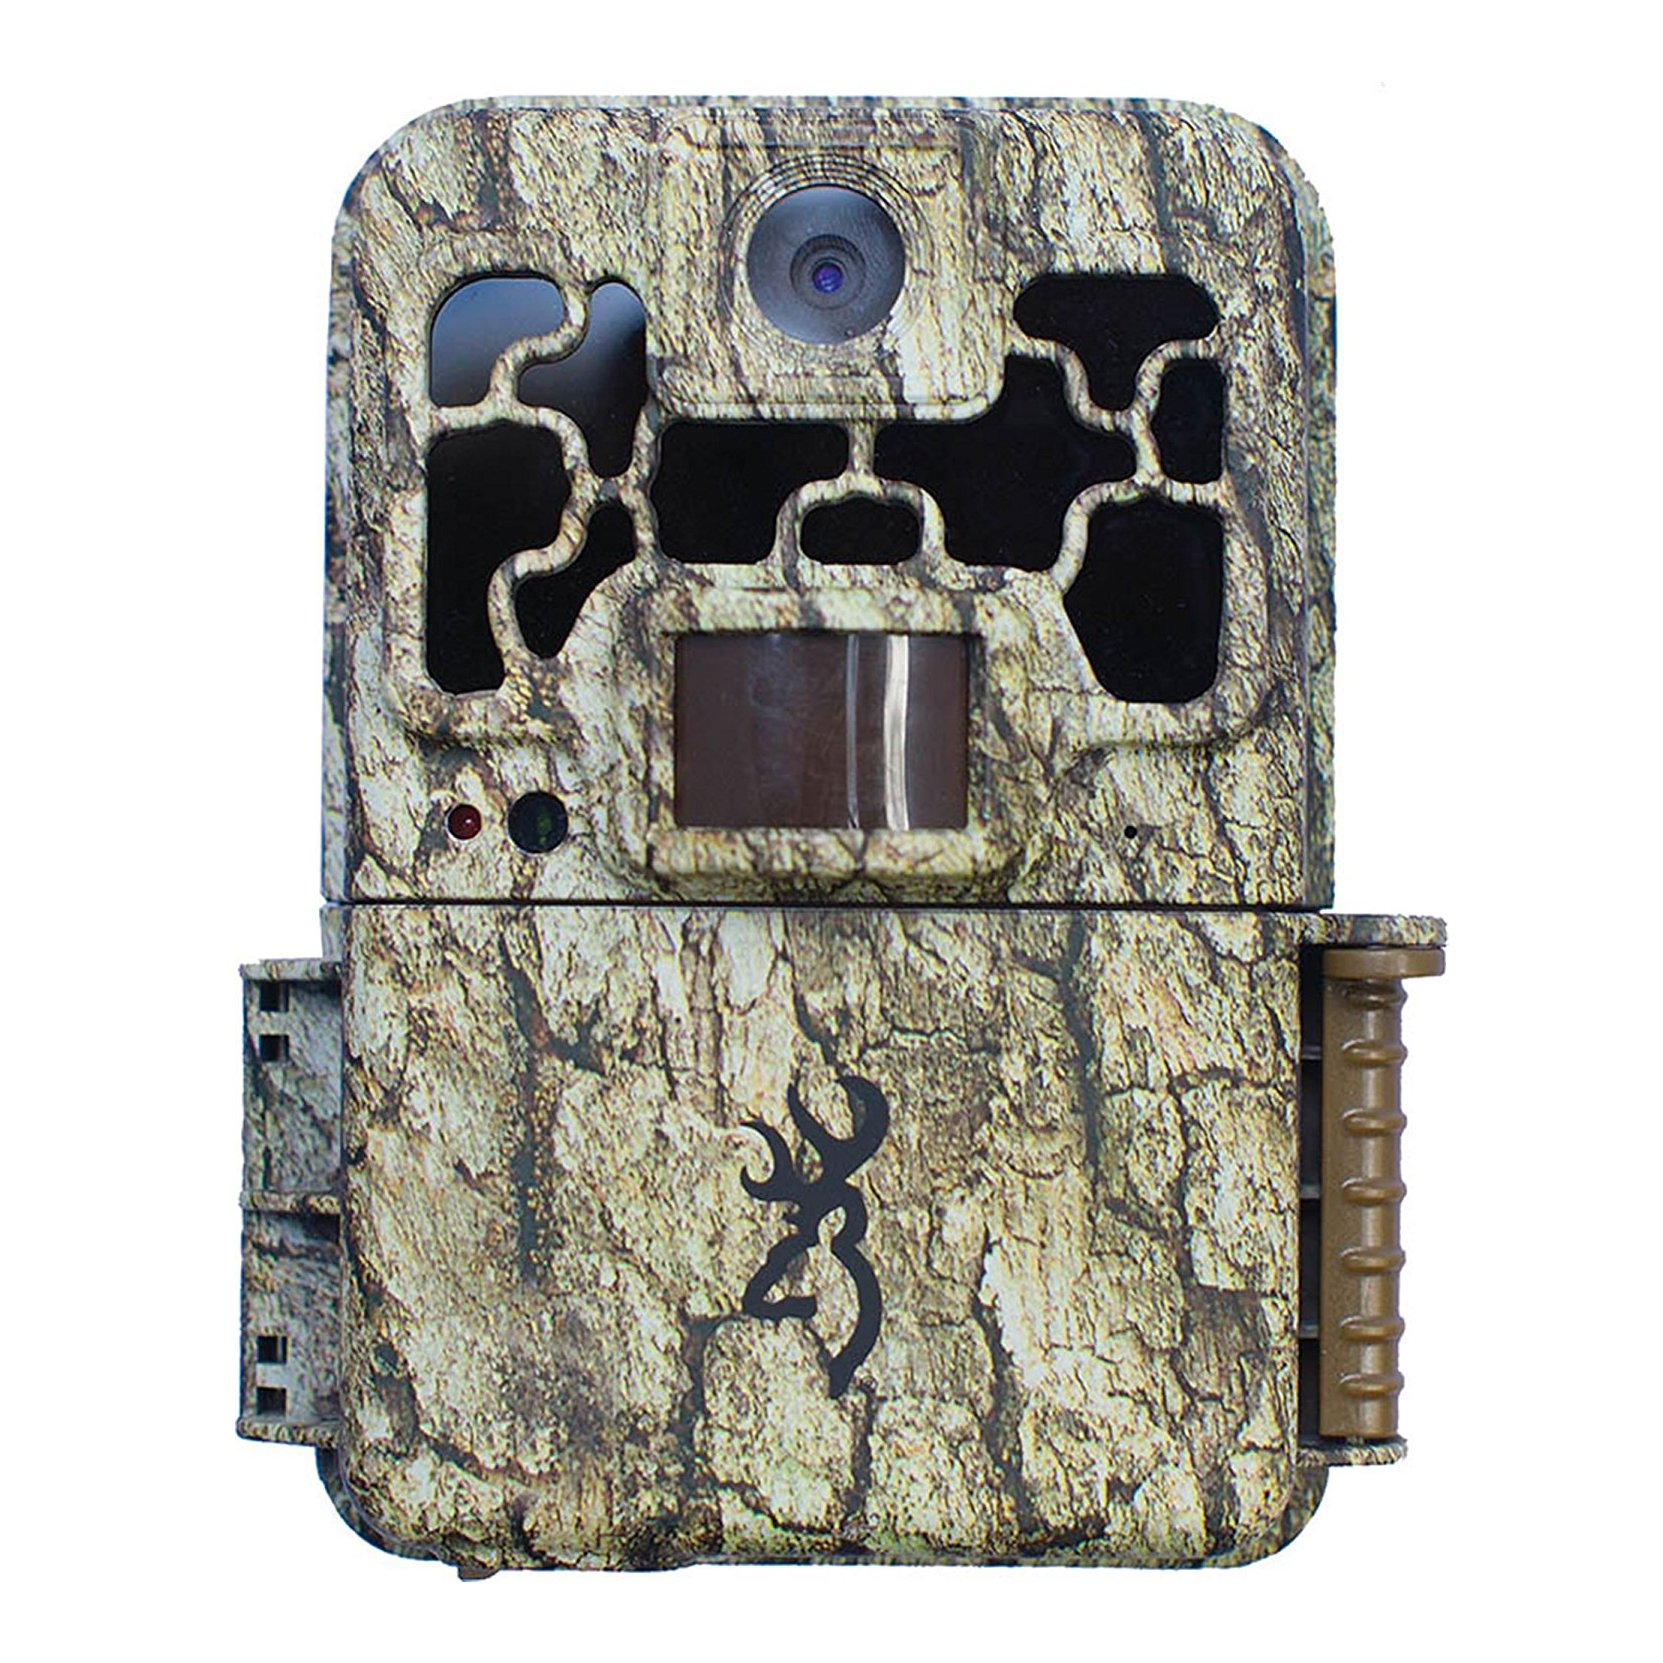 Browning Trail Cameras Spec Ops 10MP FHD Video Infrared Game Camera | BTC-8FHD by Browning Trail Cameras